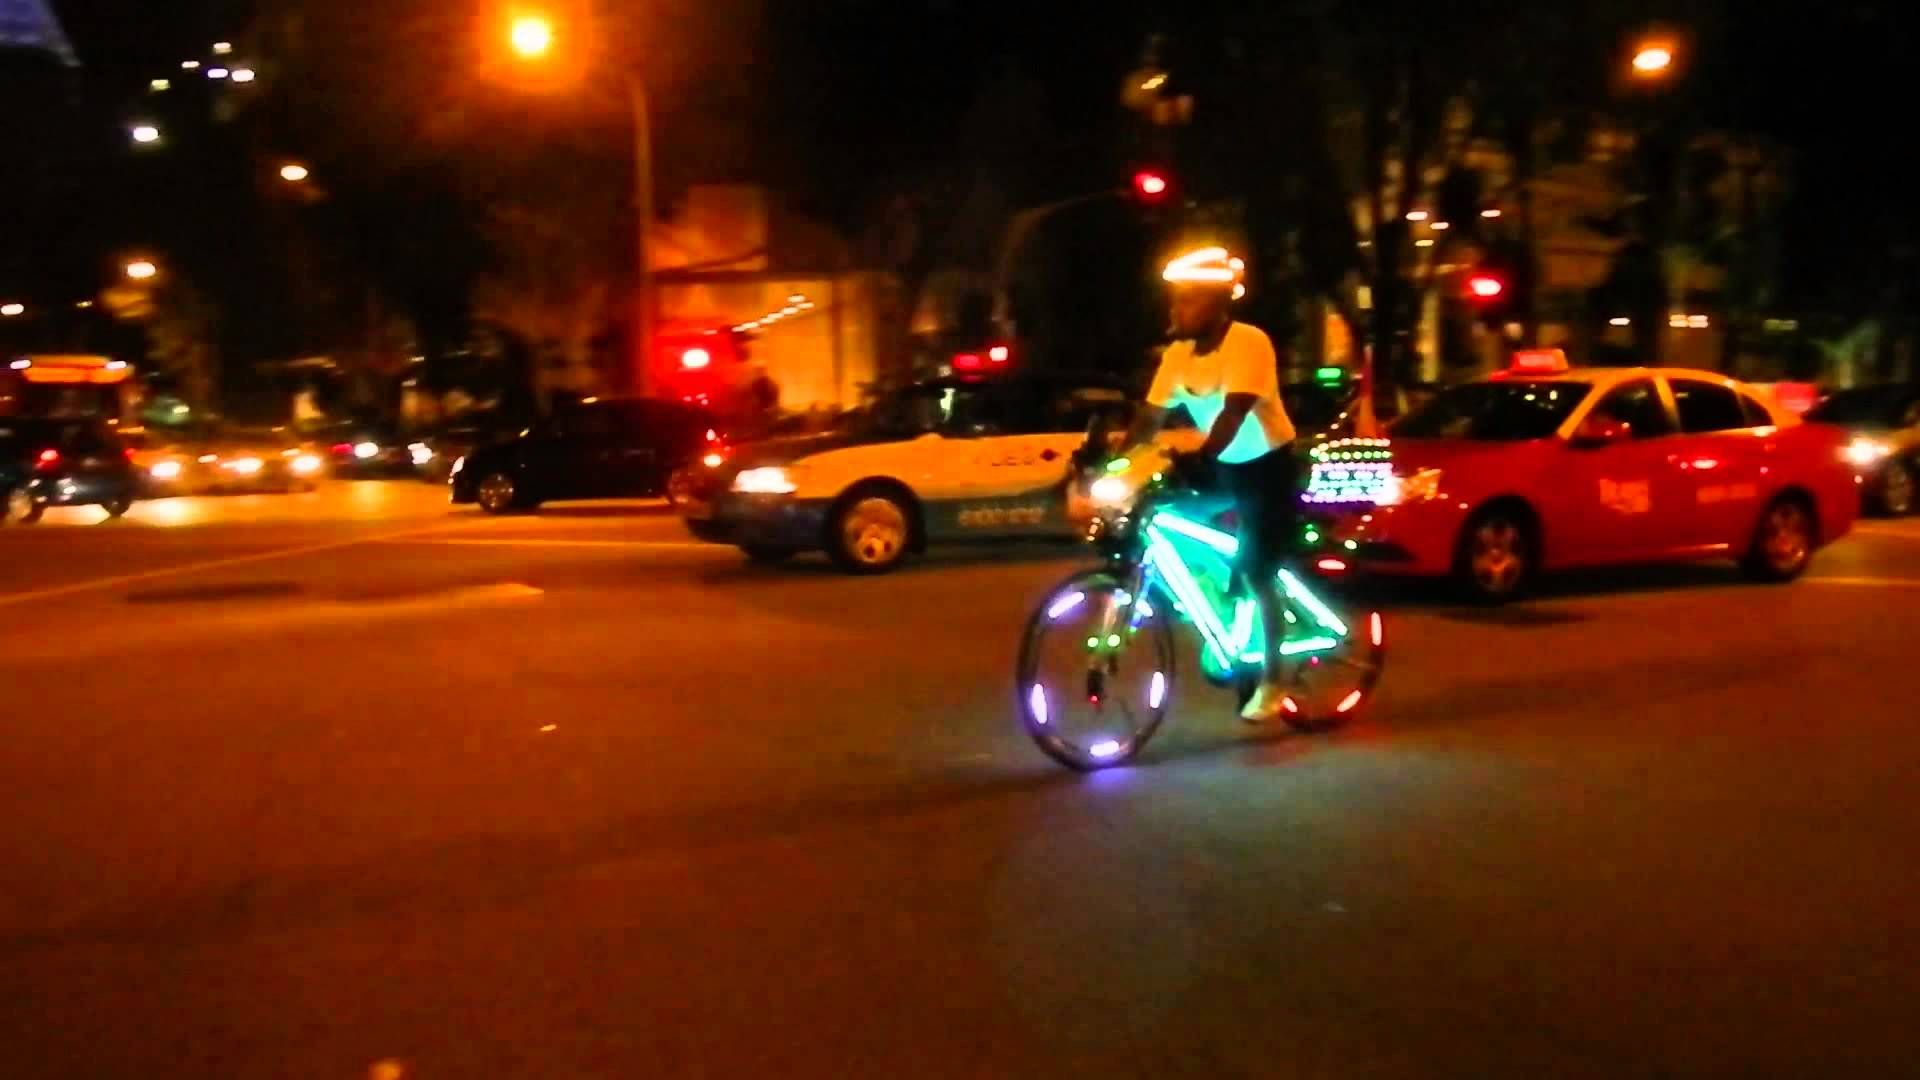 The Glowing Bike Glowing In The Dark Bike Seeking To Make Bike Paths Safer And More Accessible In The Evening And Night Hours Cycling Outfit Bike Path Bike Traffic light bicycle night glow neon